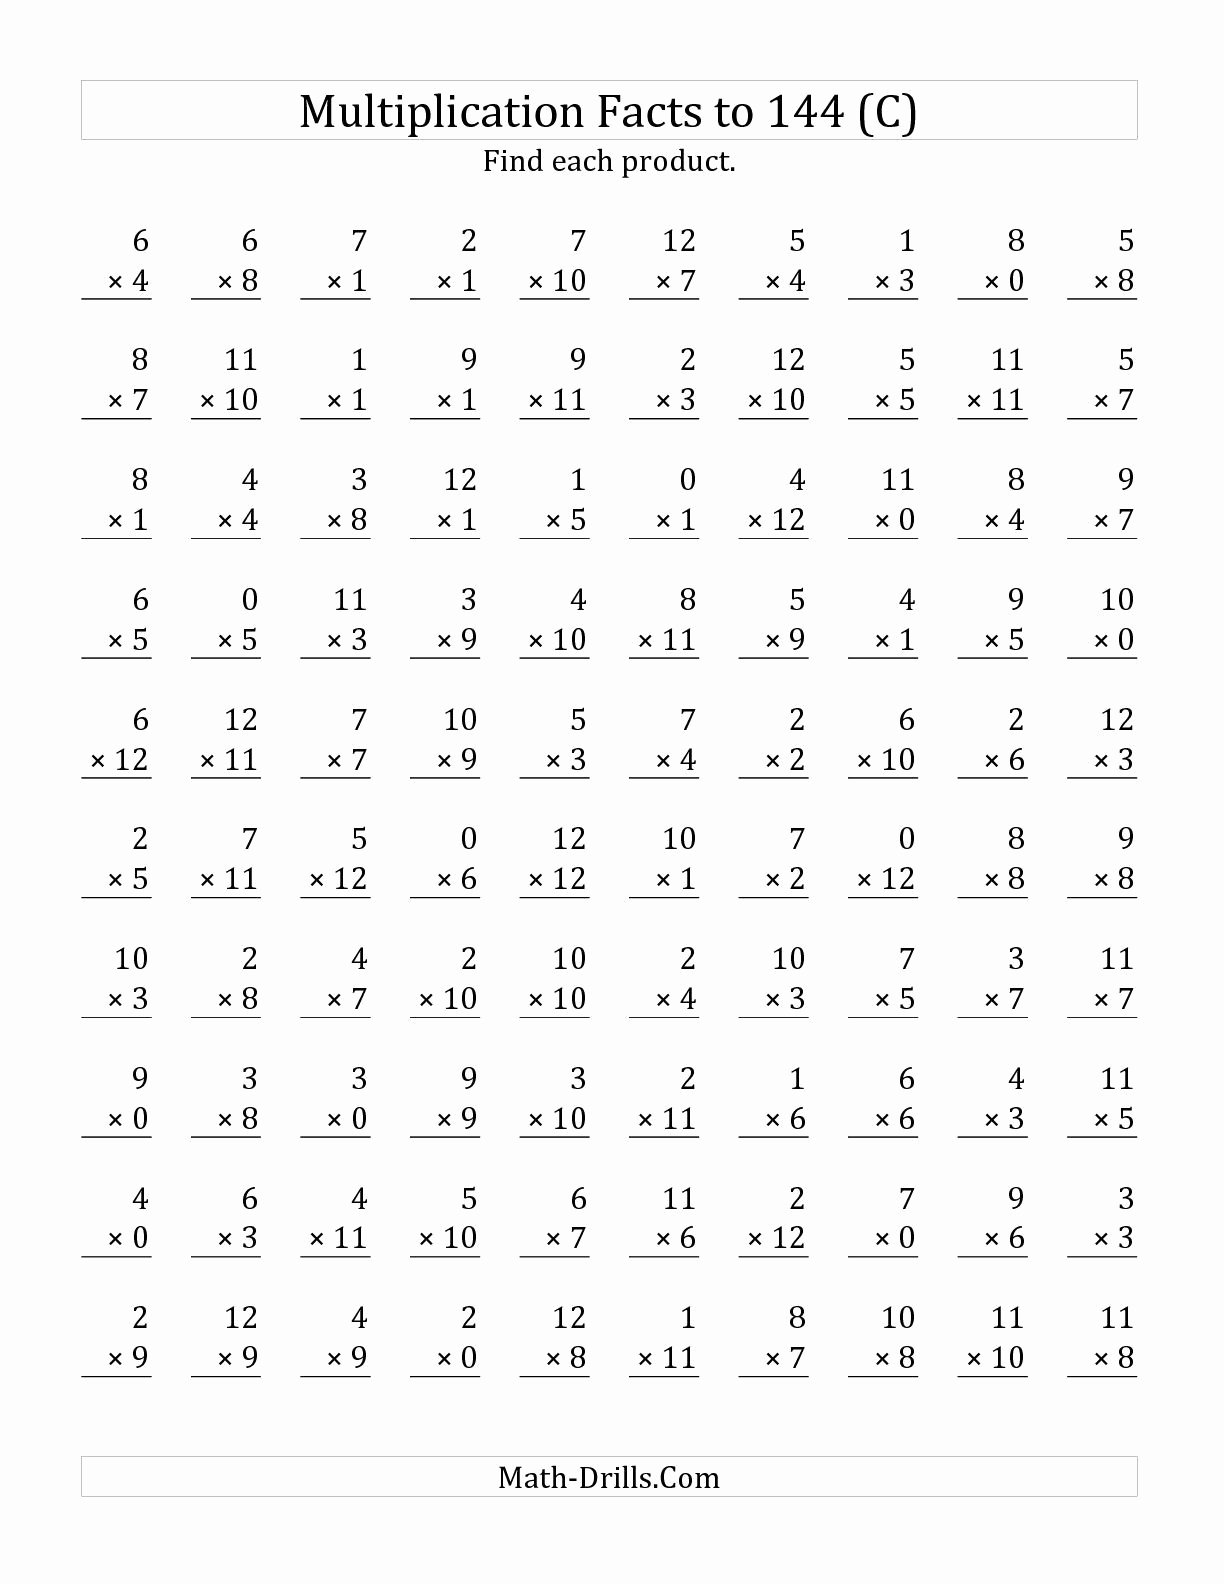 Multiplication Worksheets Facts New the Multiplication Facts to 144 Including Zeros C Math Wor